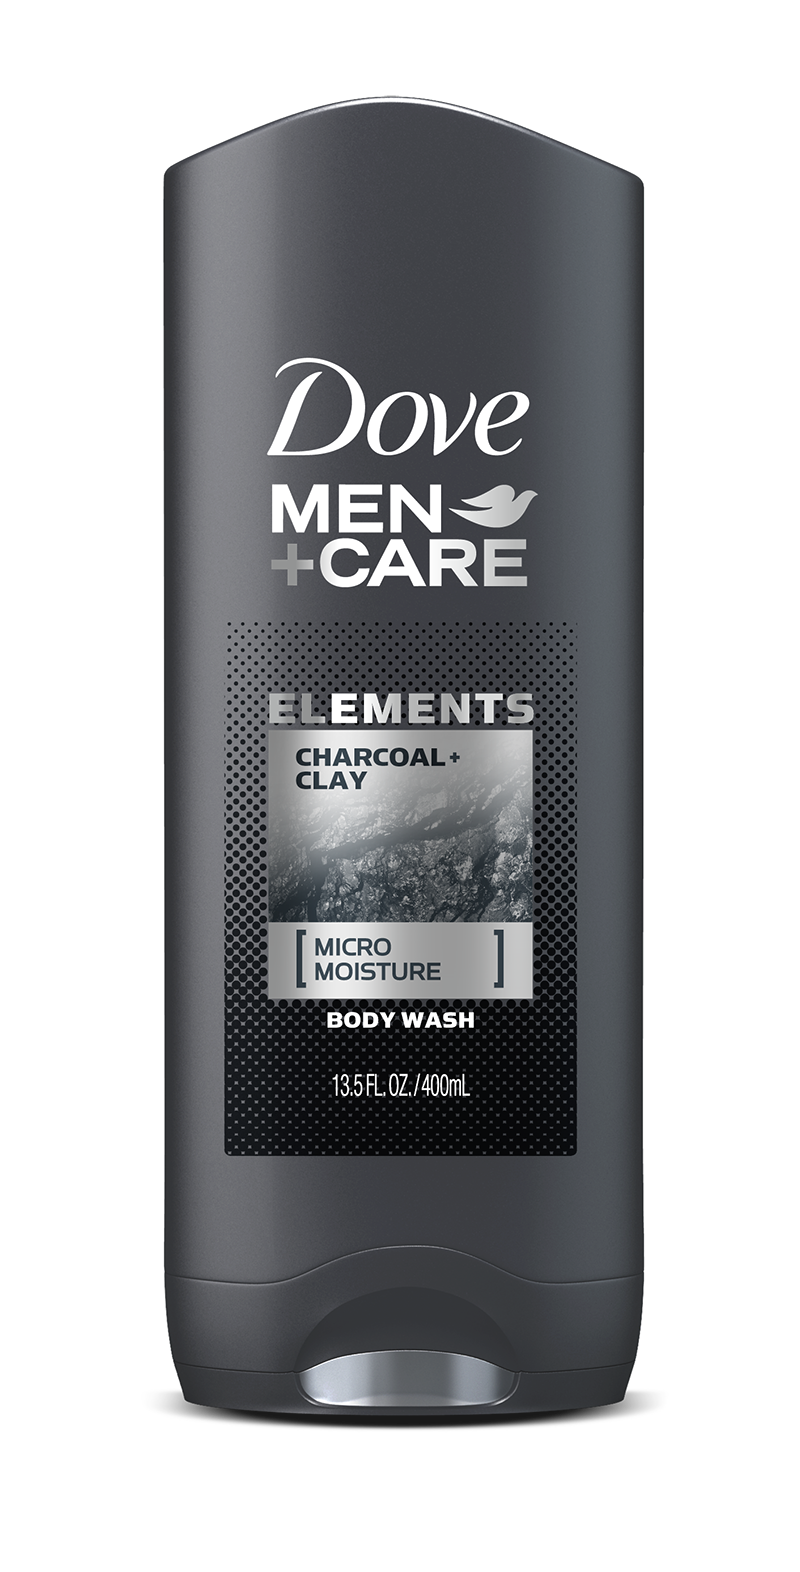 Dove Men Care Body Washes 2017 Holiday Gift Event Guide